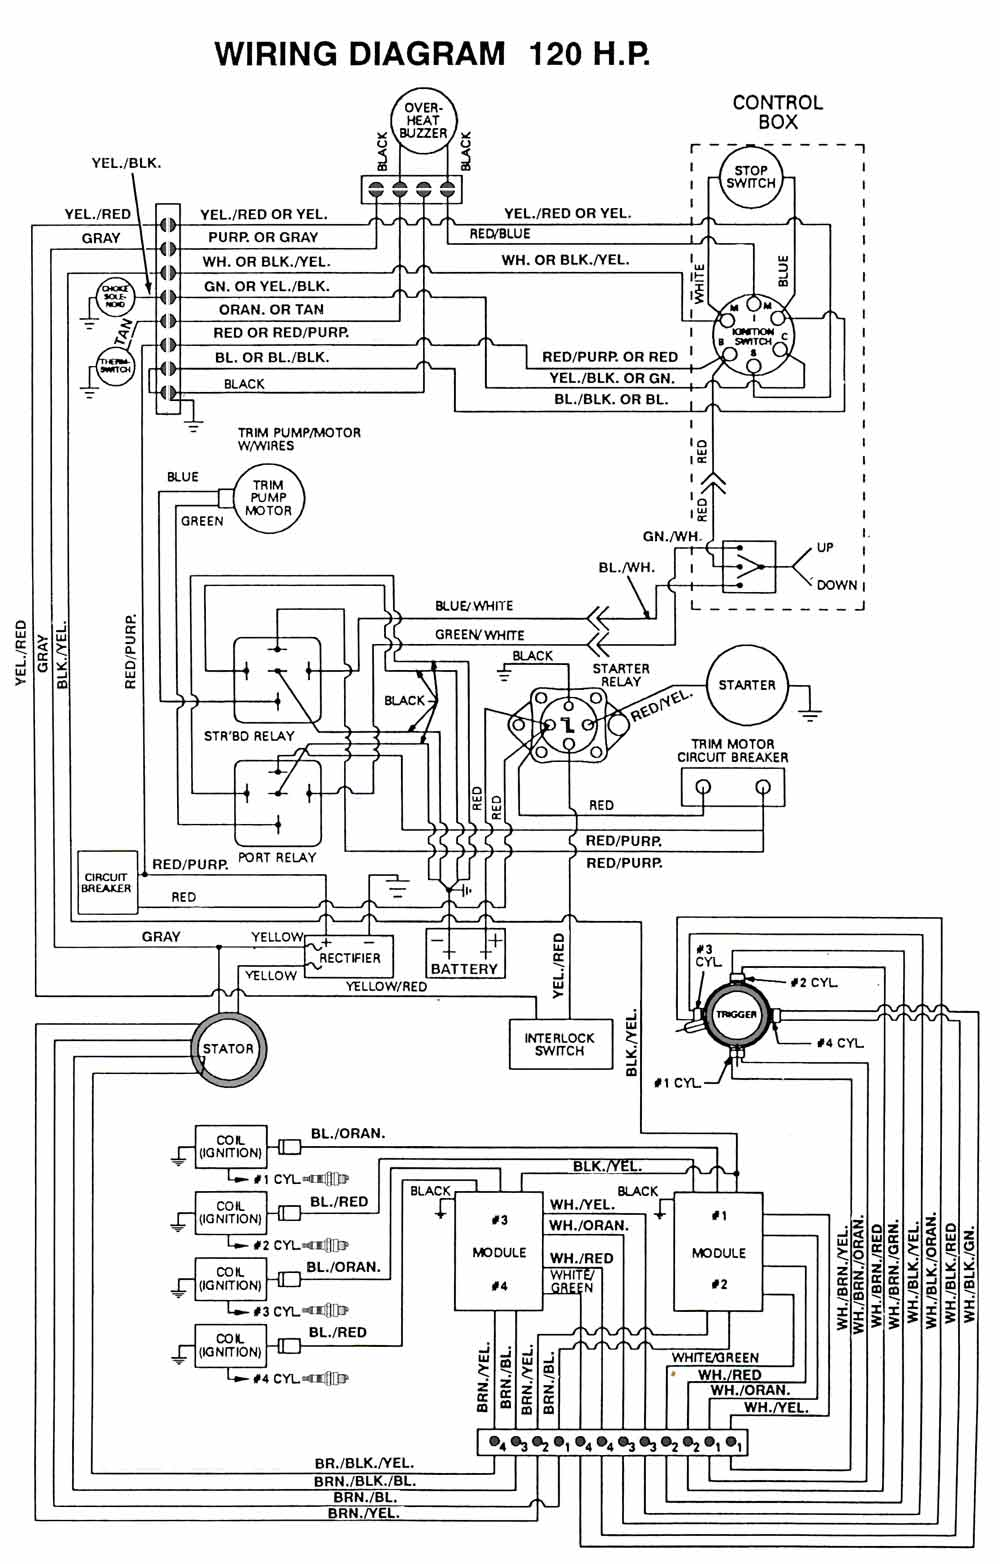 Suzuki Outboard Engine Wiring Diagram Libraries Motor For Mariner Youmariner Diagrams Scematic